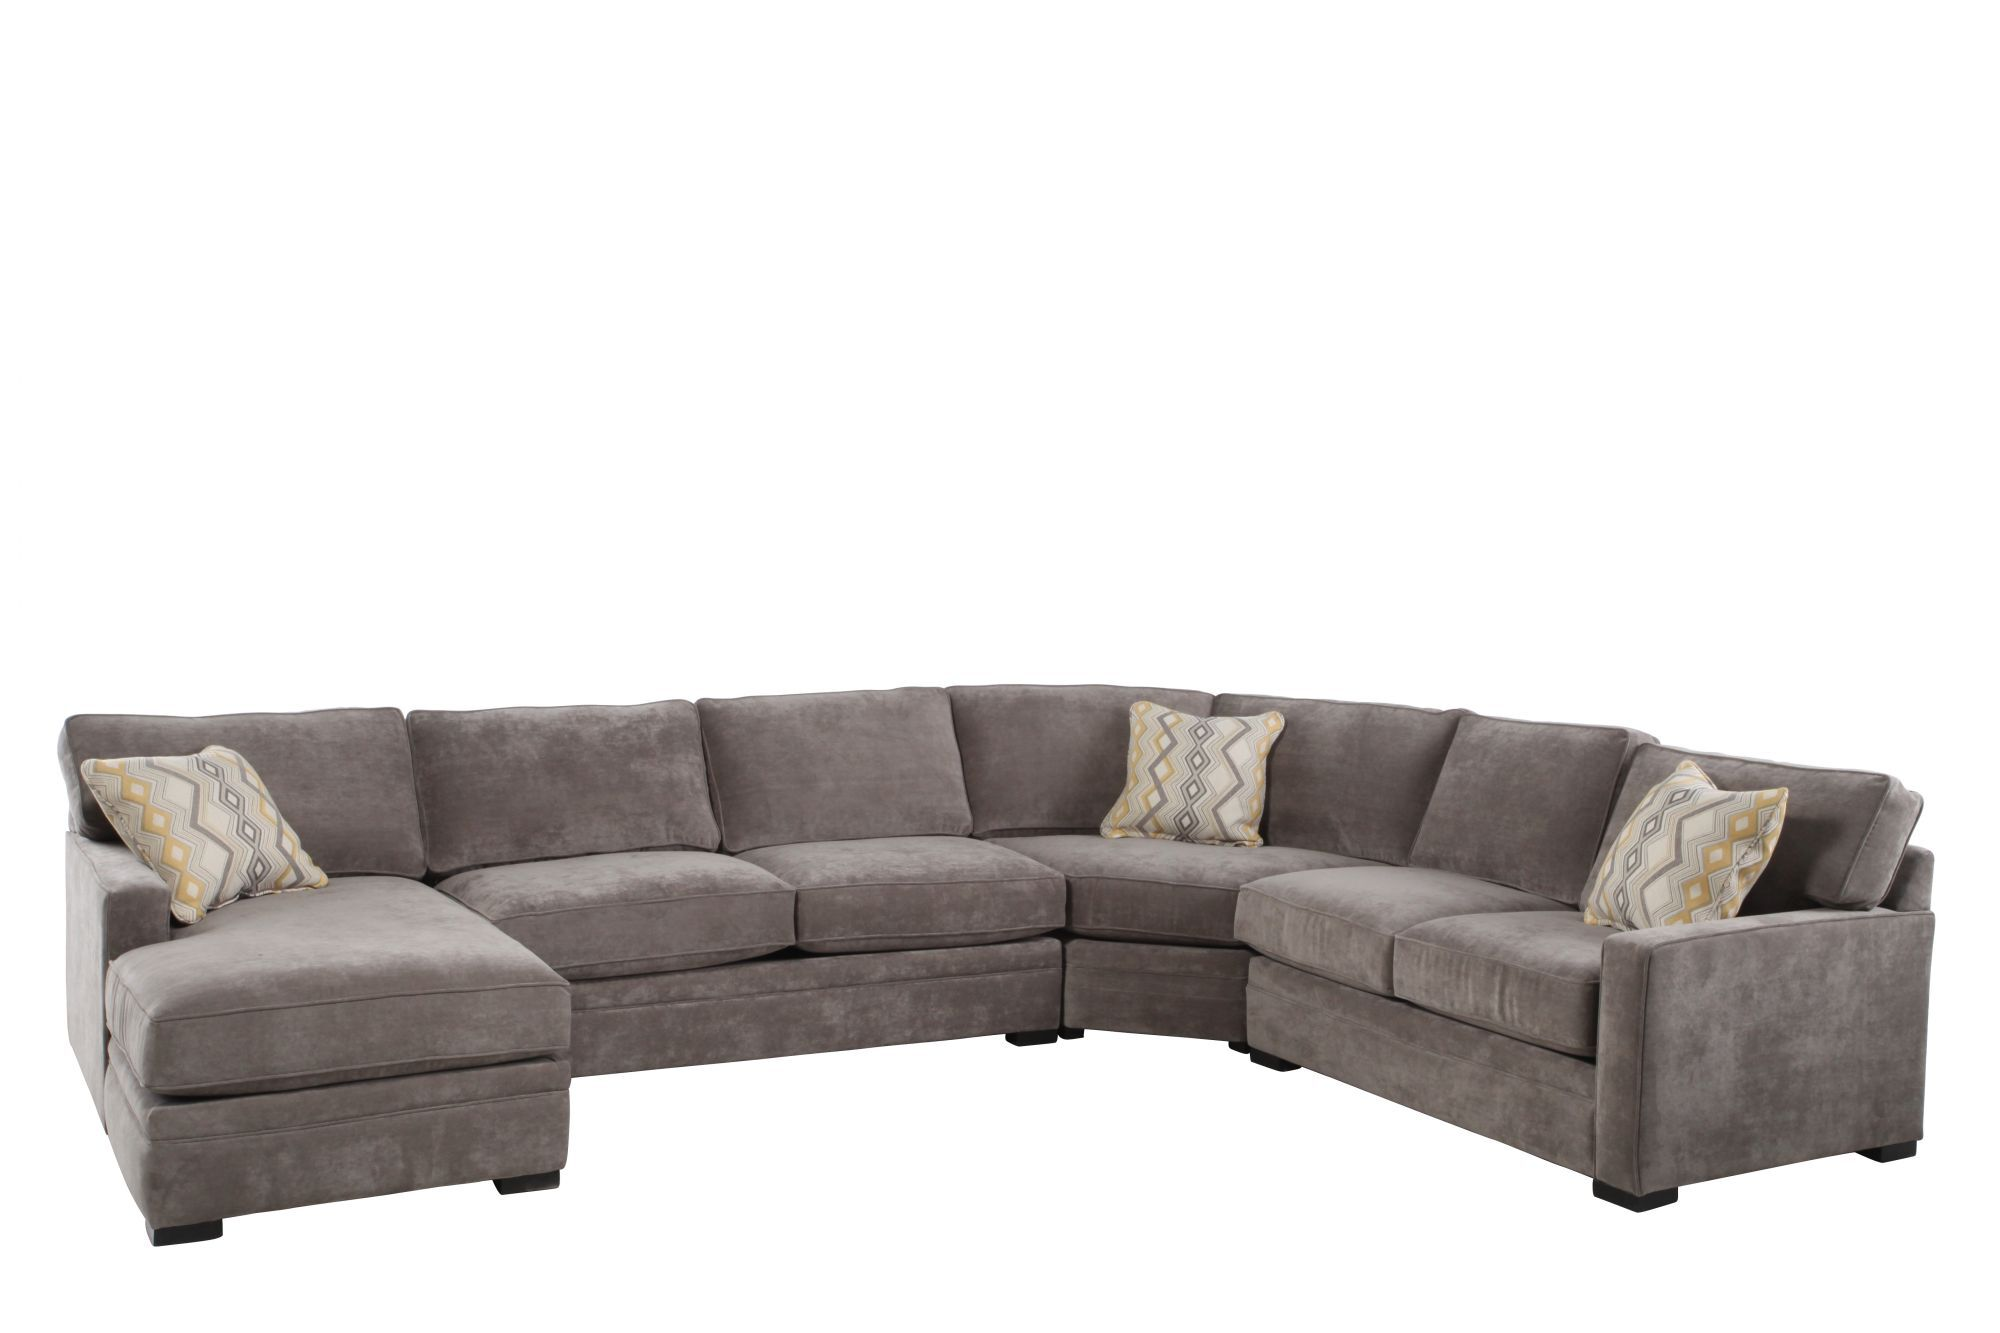 Four-Piece Contemporary 150u0026quot; Sectional in Hazelnut  sc 1 st  Mathis Brothers : jonathan louis chaise lounge - Sectionals, Sofas & Couches